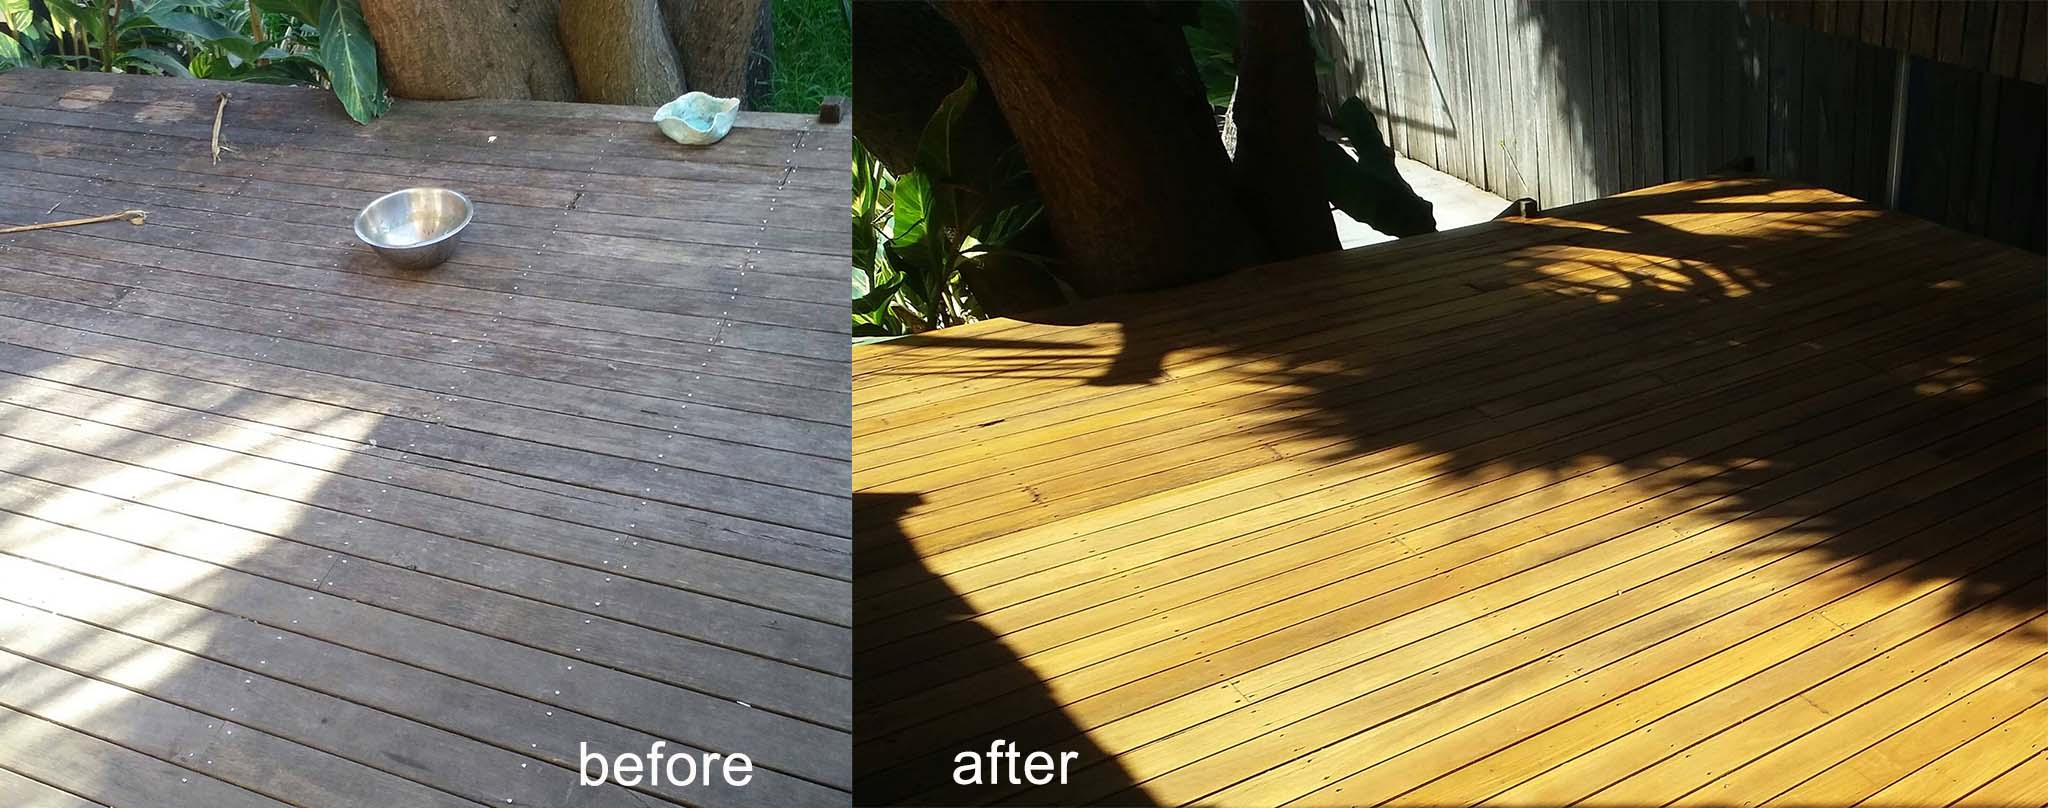 Before and After Outdoor Timber Deck Installation